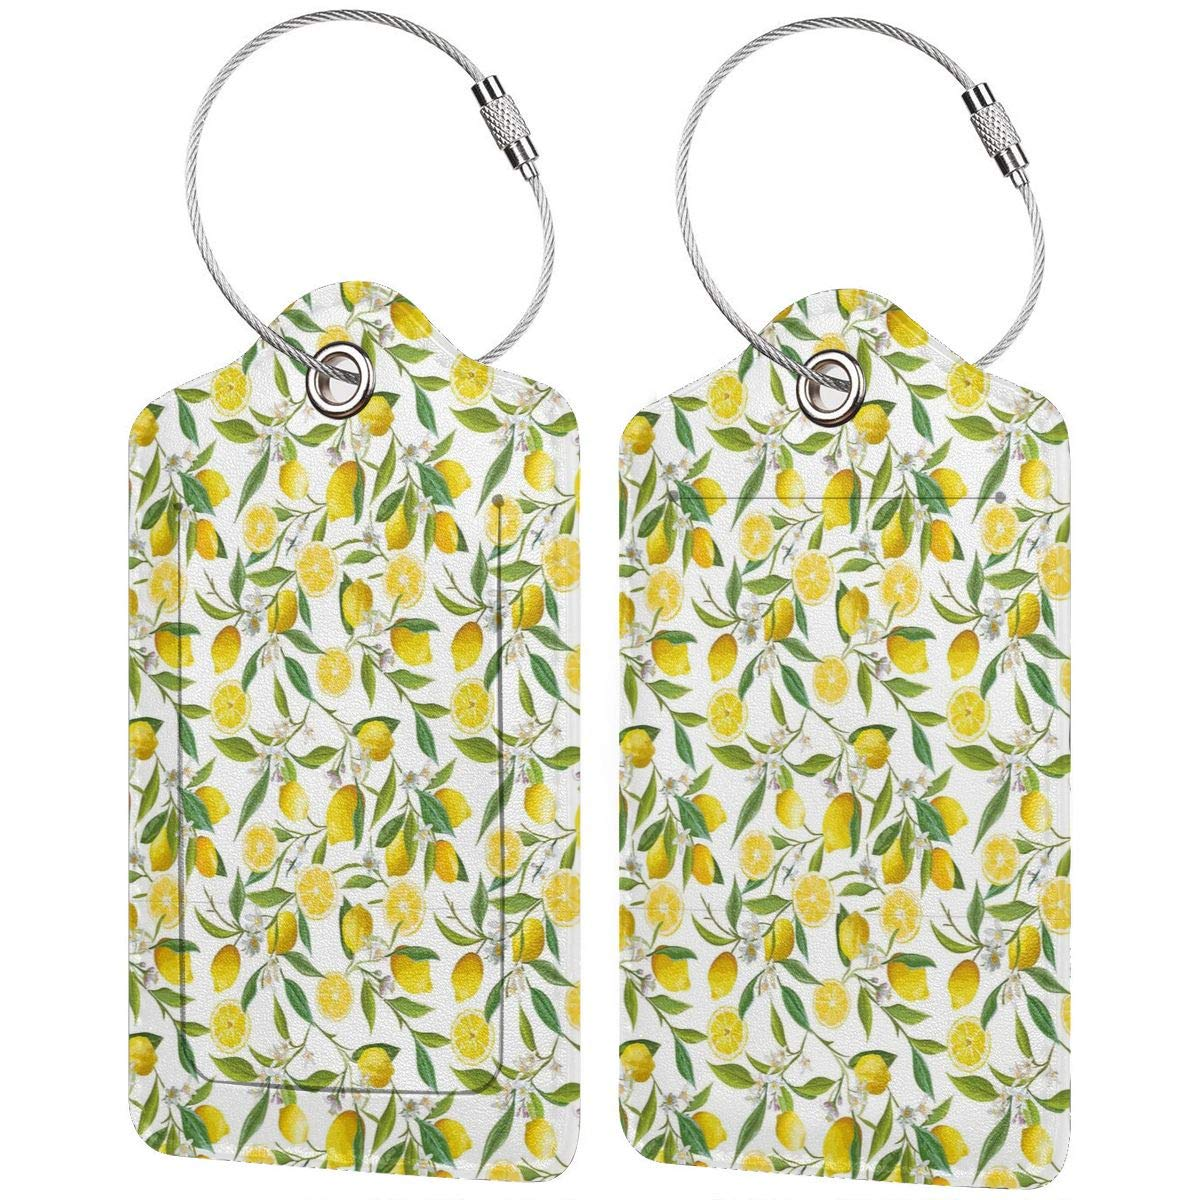 Key Tags for Backpacks Travel Bags Gift Lemon Tree 2.7 x 4.6 Blank Tag Leather Luggage Tags Full Privacy Cover and Stainless Steel Loop 1 2 4 Pcs Set